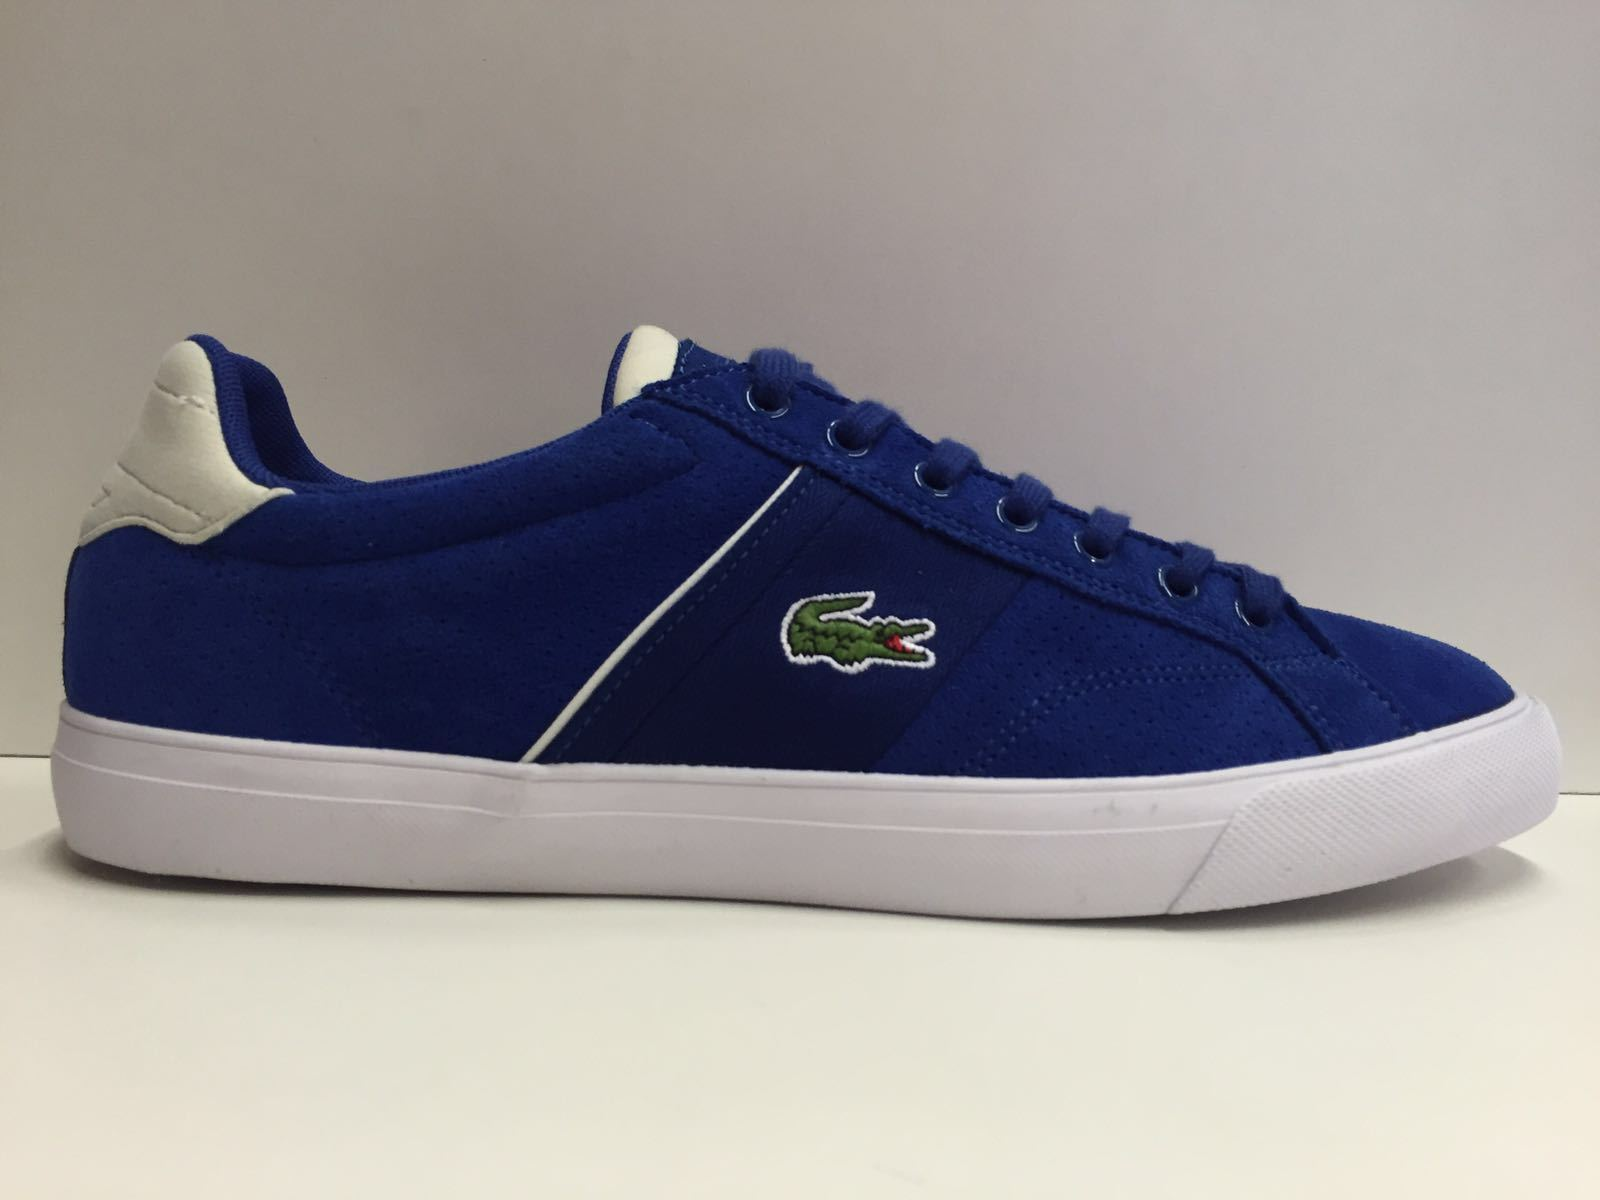 SCARPE SNEAKERS LACOSTE ORIGINALI FAIRLEAD 7-31SPM0015125 PELLE SHOES UNISEX NEW